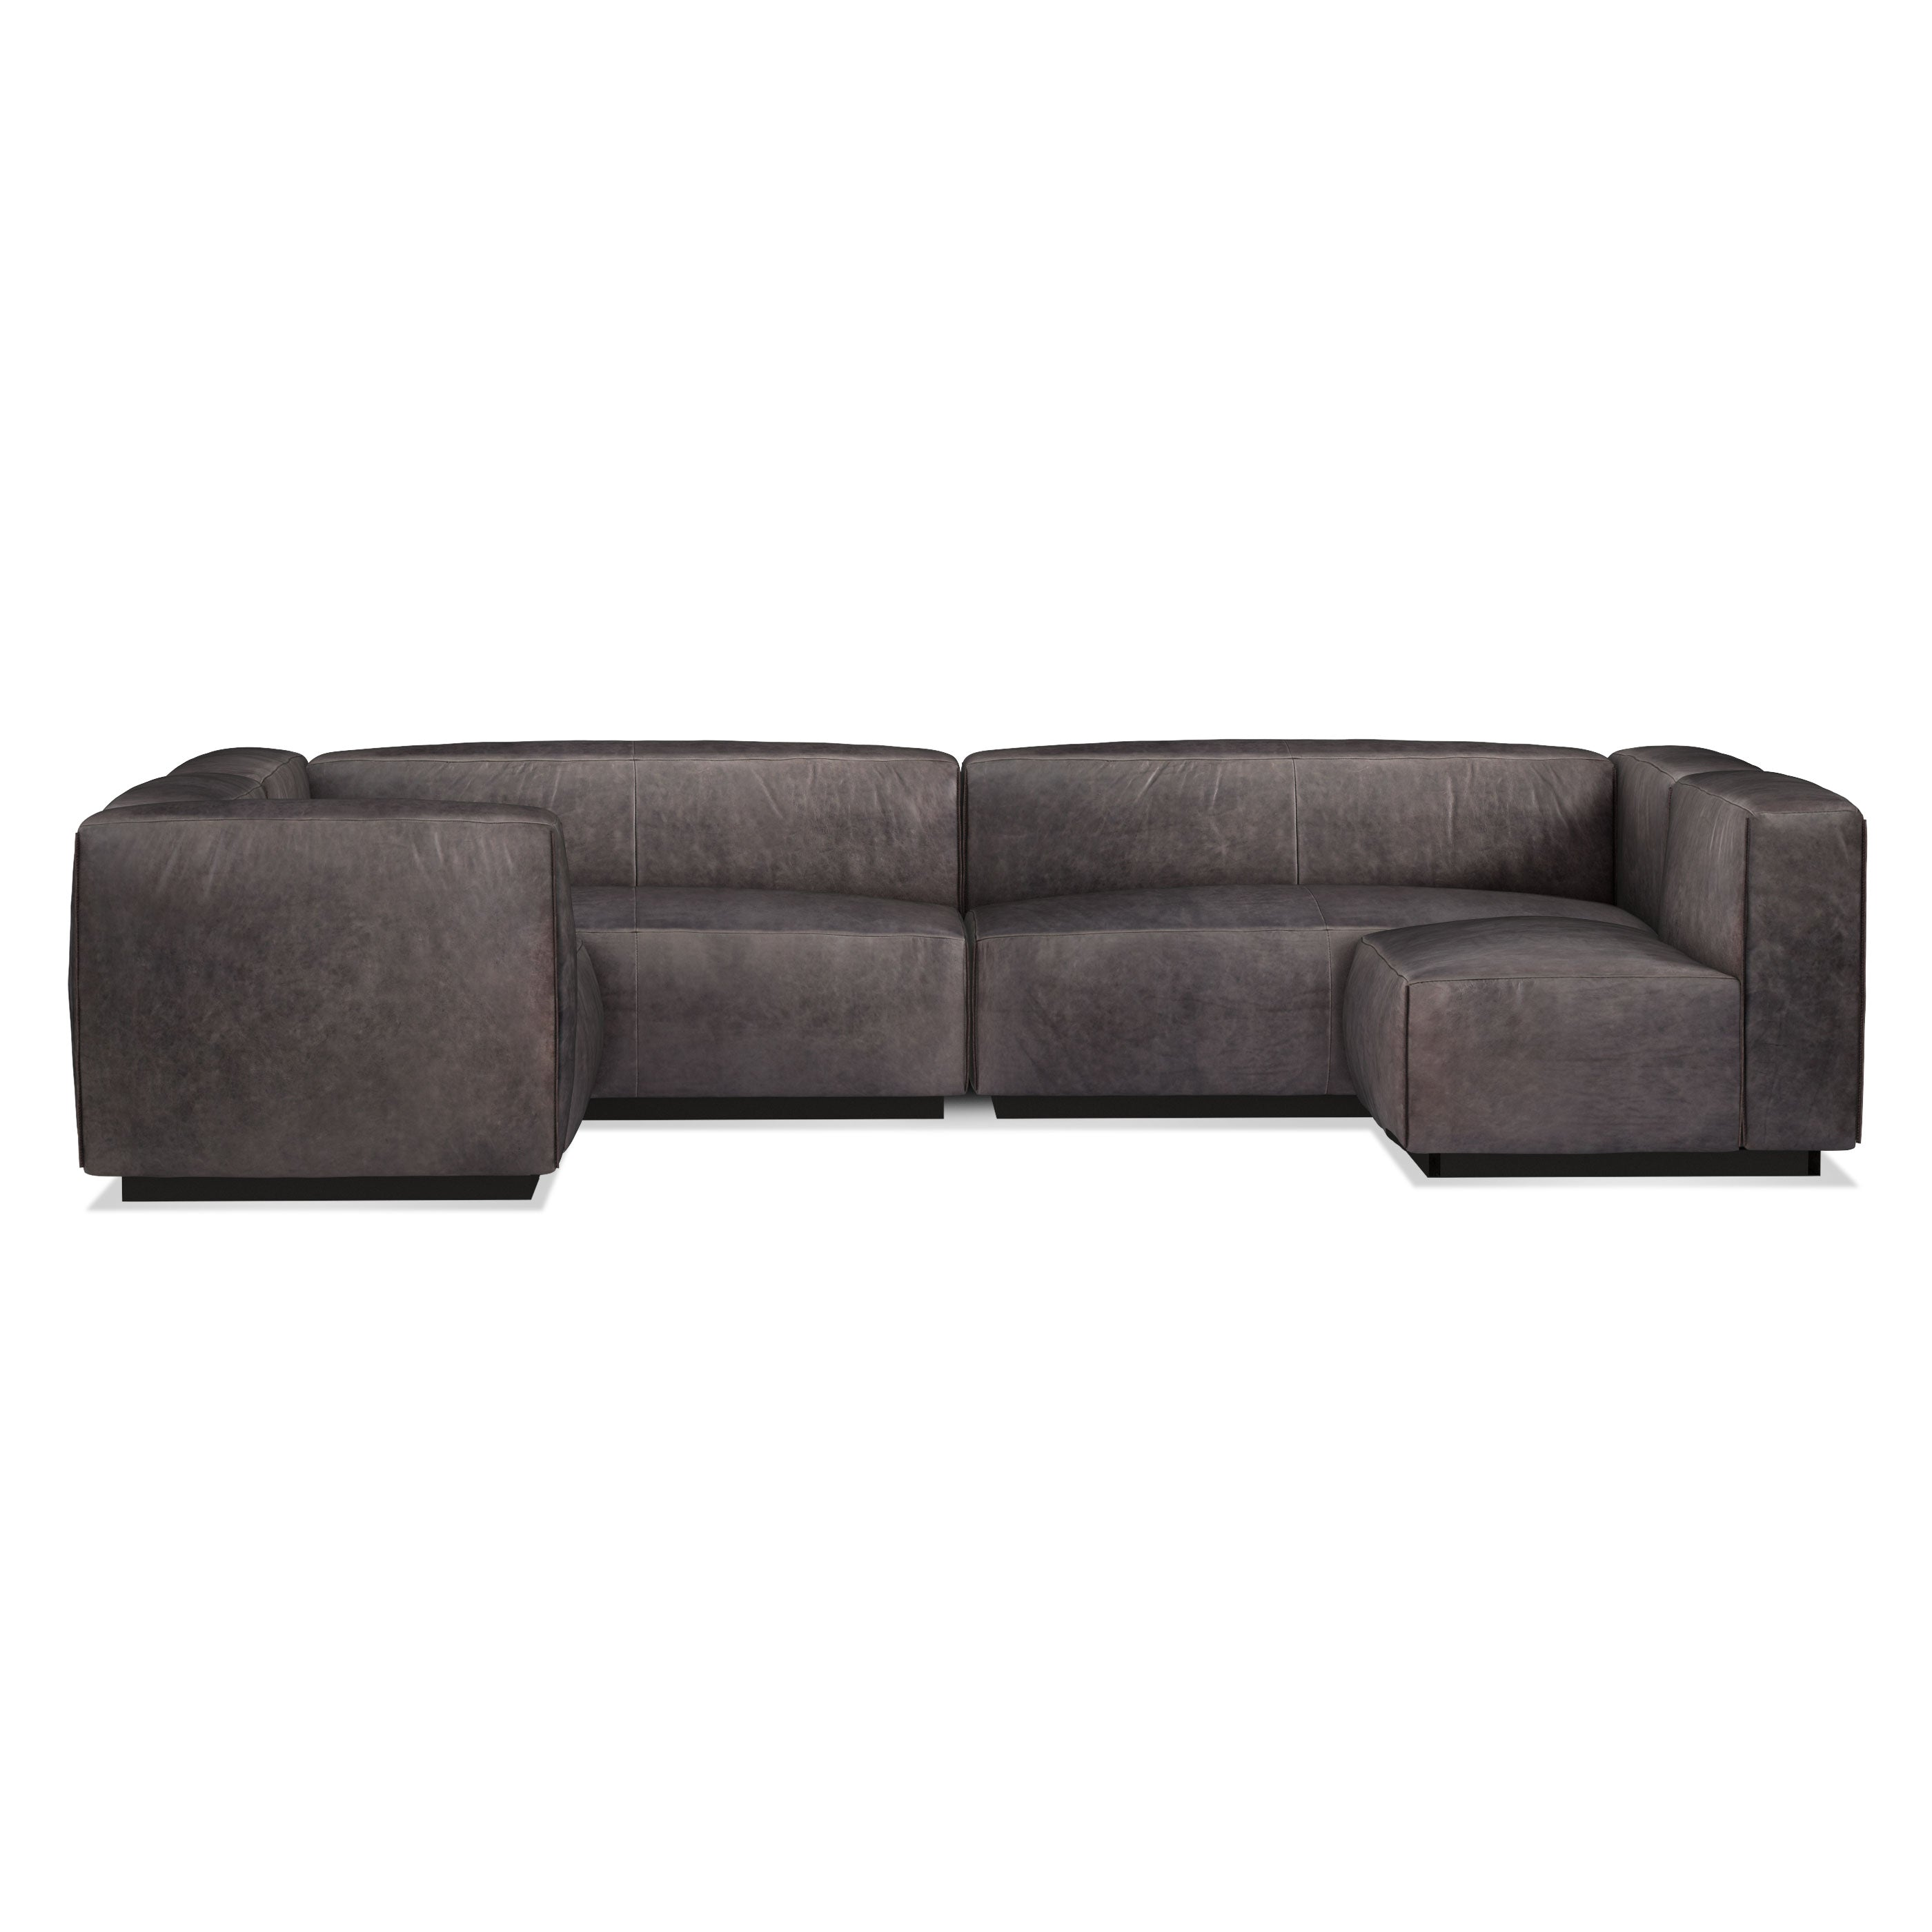 Cleon Large Leather Modular Sectional Sofa